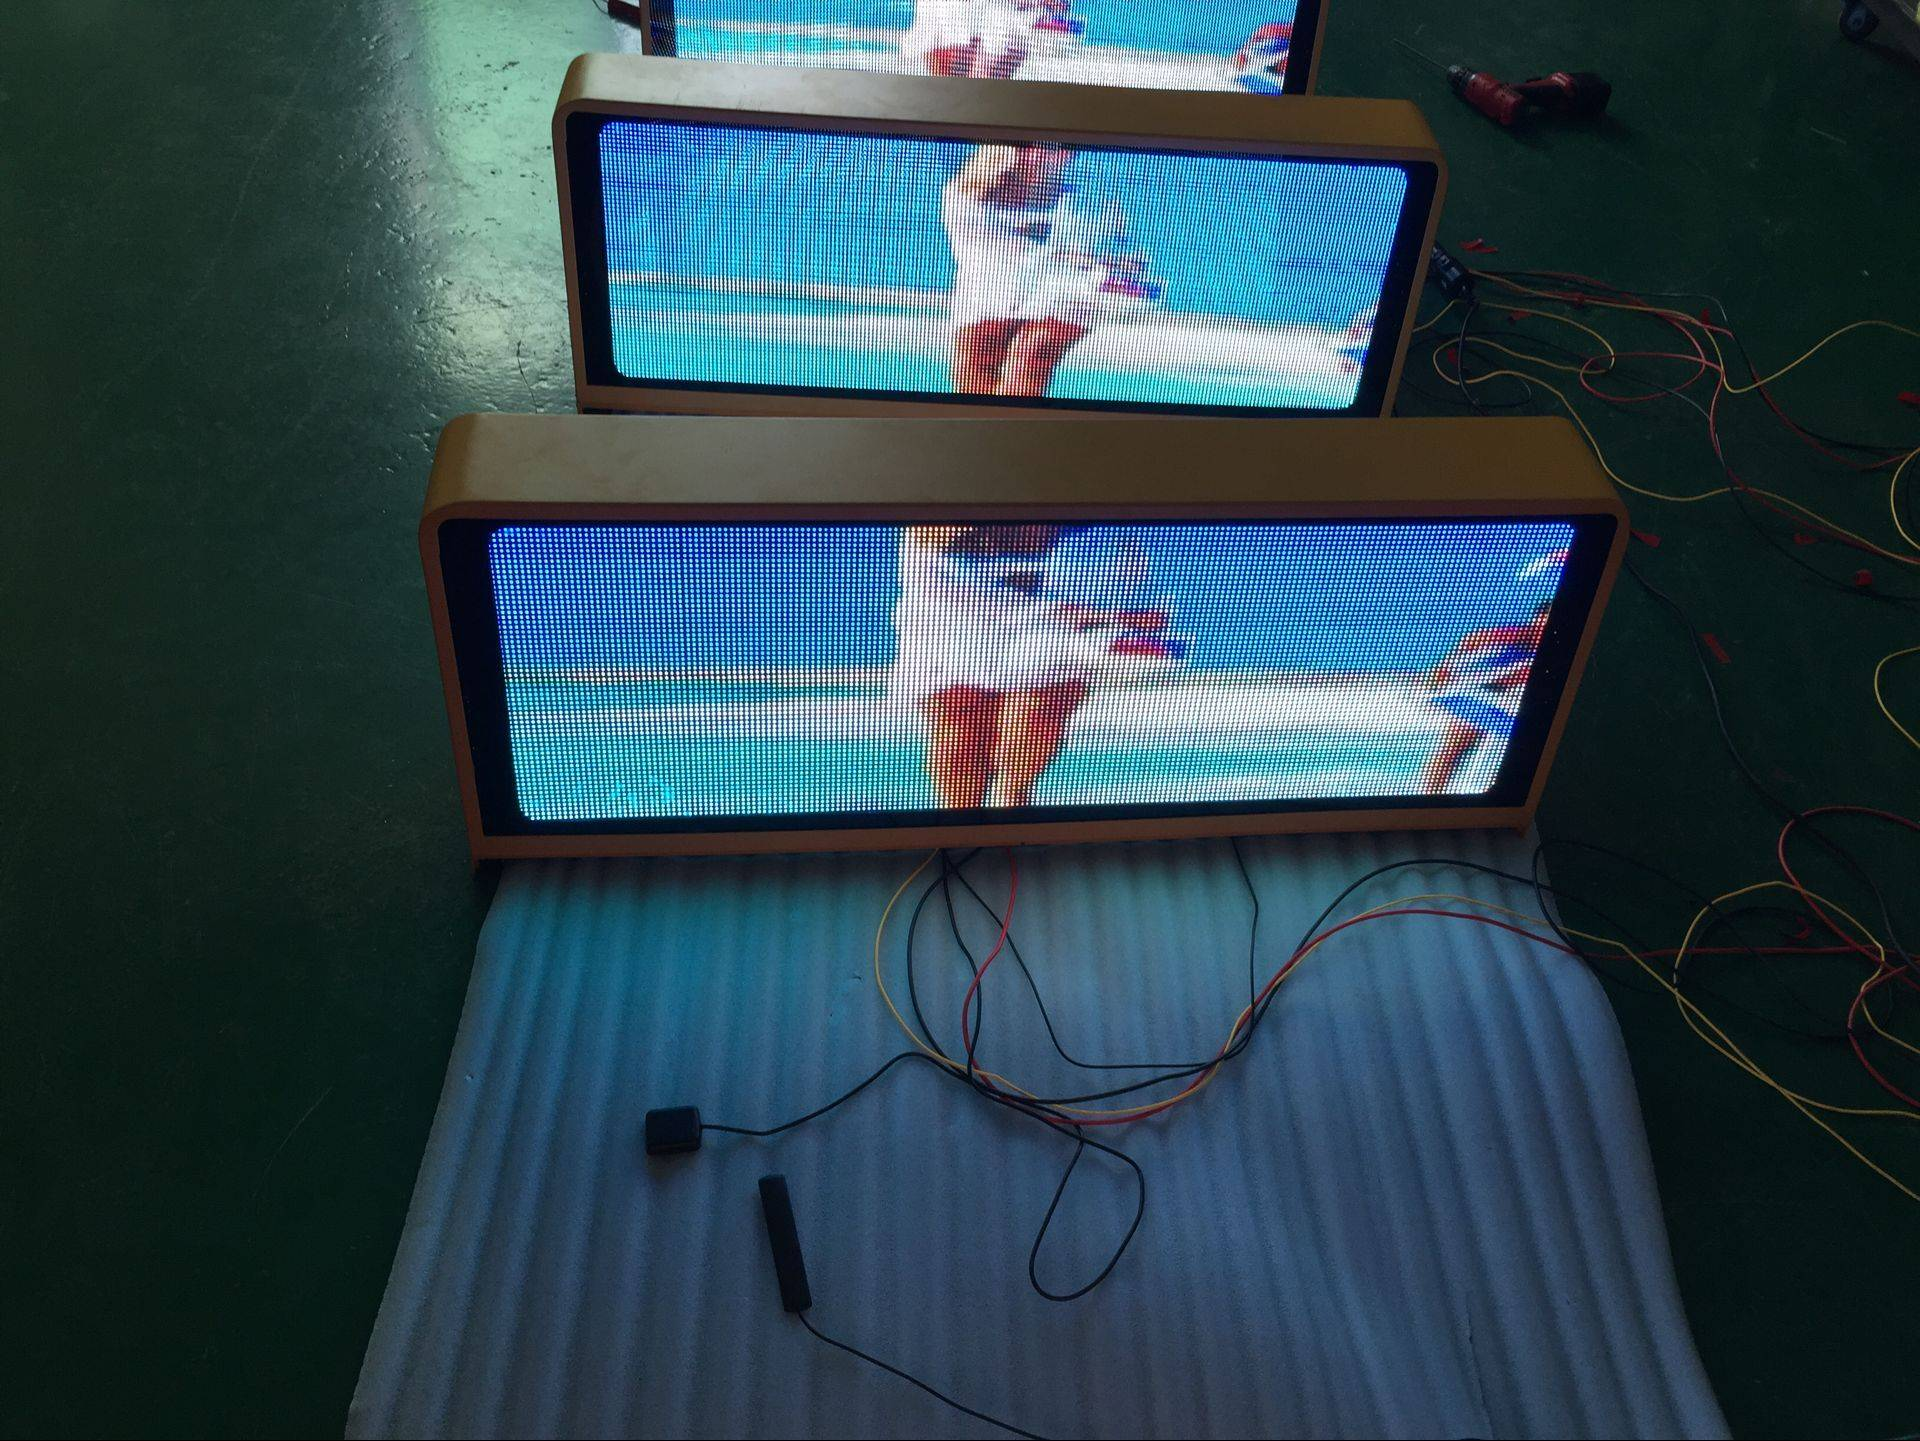 P5mm Wireless 3G And Gps Double Side Taxi Led Screen Display